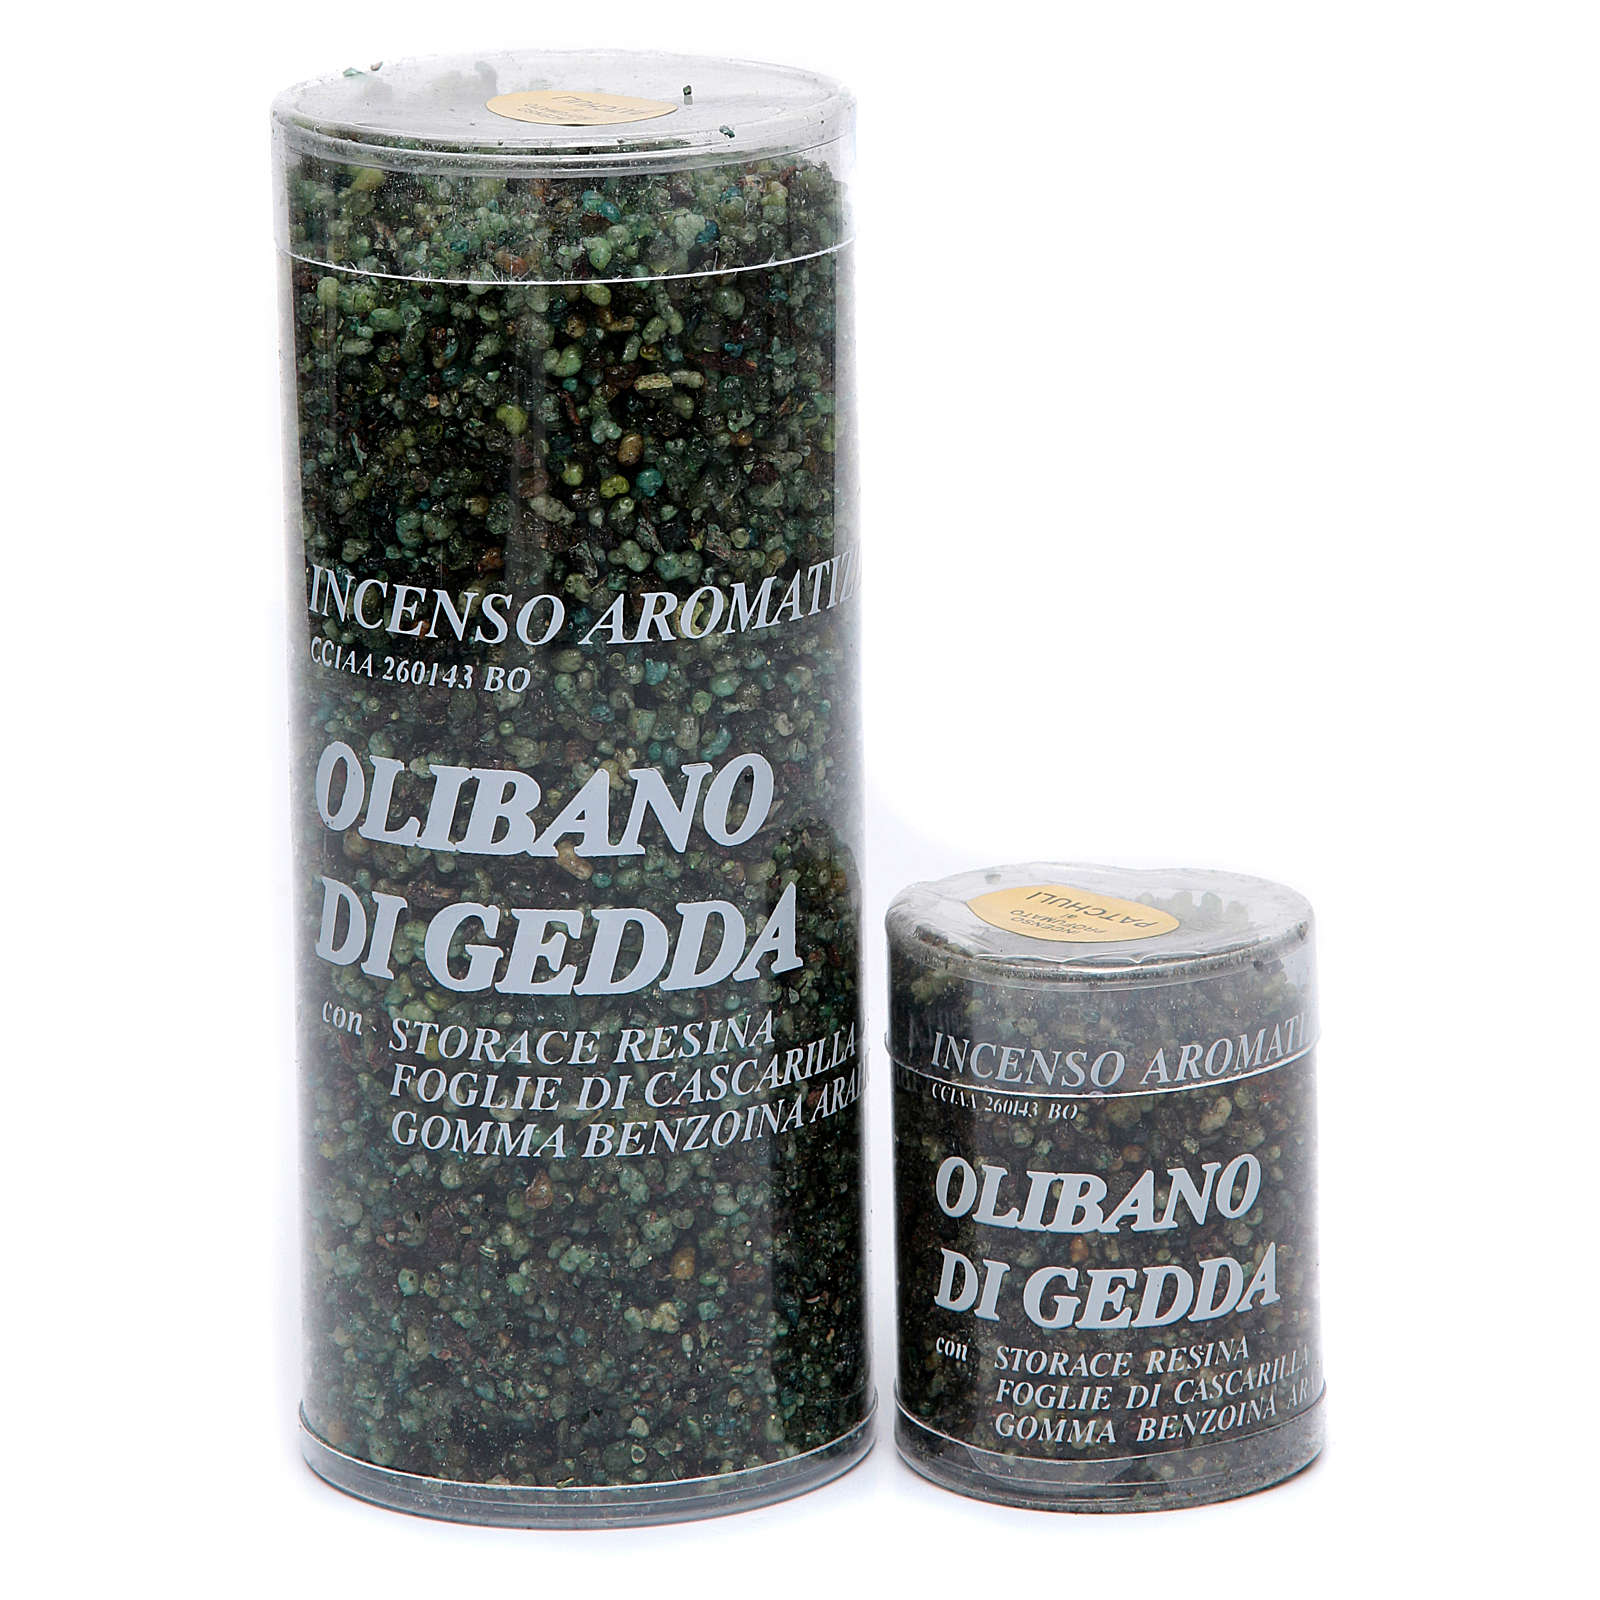 Olibano of Gedda incense Patchouli 3